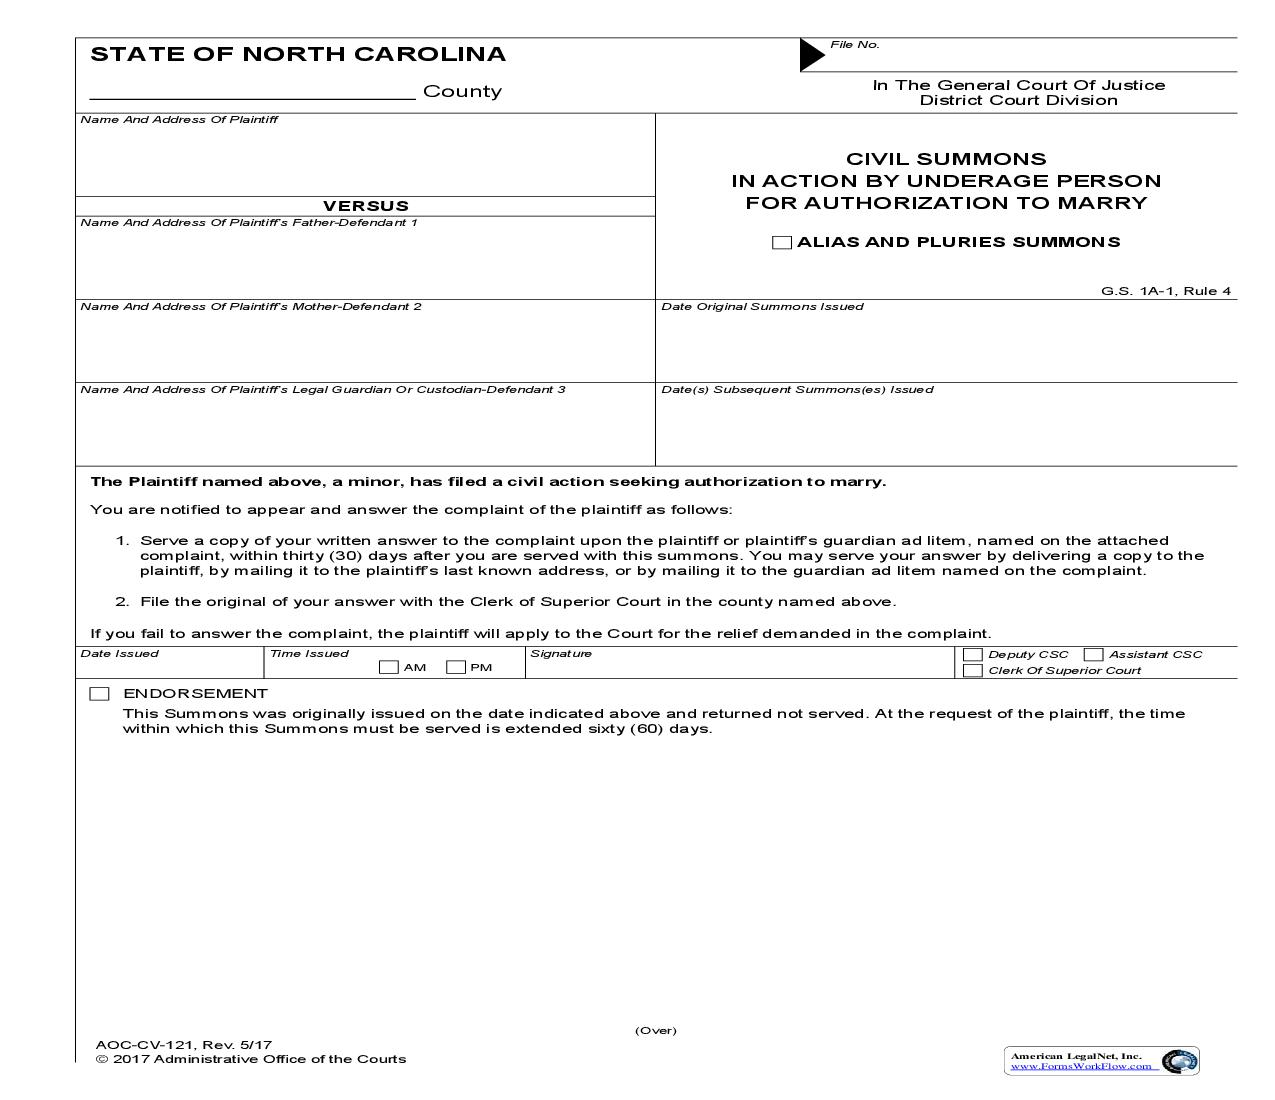 Civil Summons In Action By Underage Person For Authorization To Marry {CV-121} | Pdf Fpdf Doc Docx | North Carolina